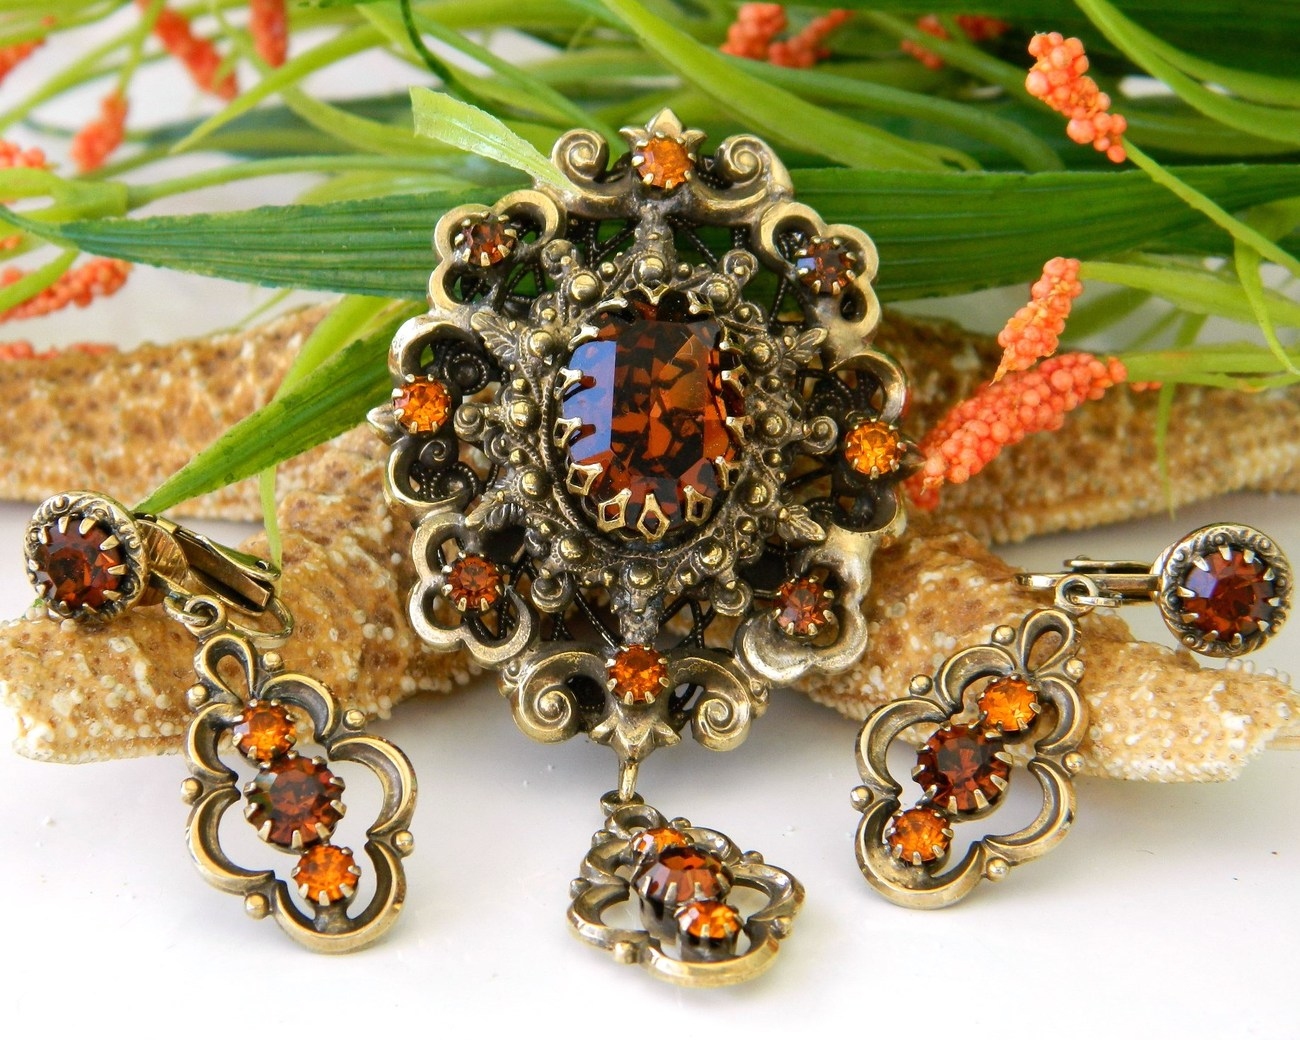 Vintage_hobe_brooch_pendant_earrings_demi_parure_rhinestone_set